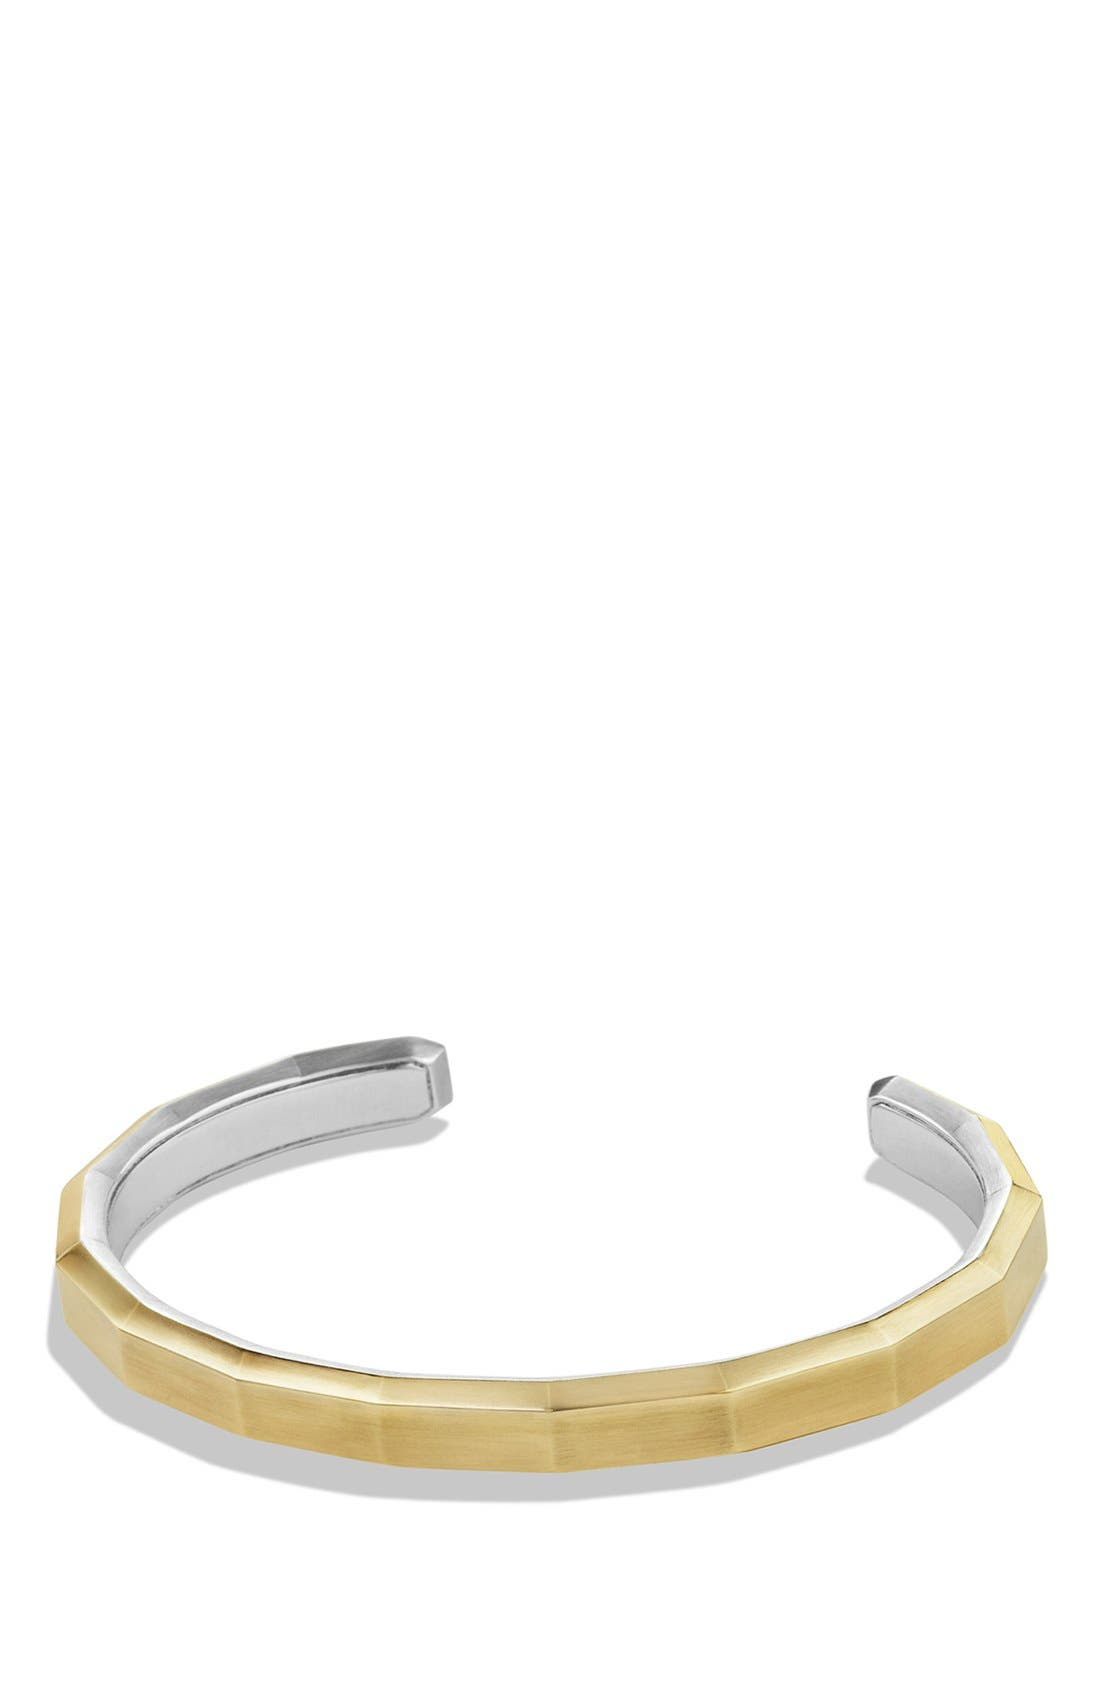 'Faceted Metal' Cuff Bracelet with 18k Gold,                         Main,                         color, Two Tone